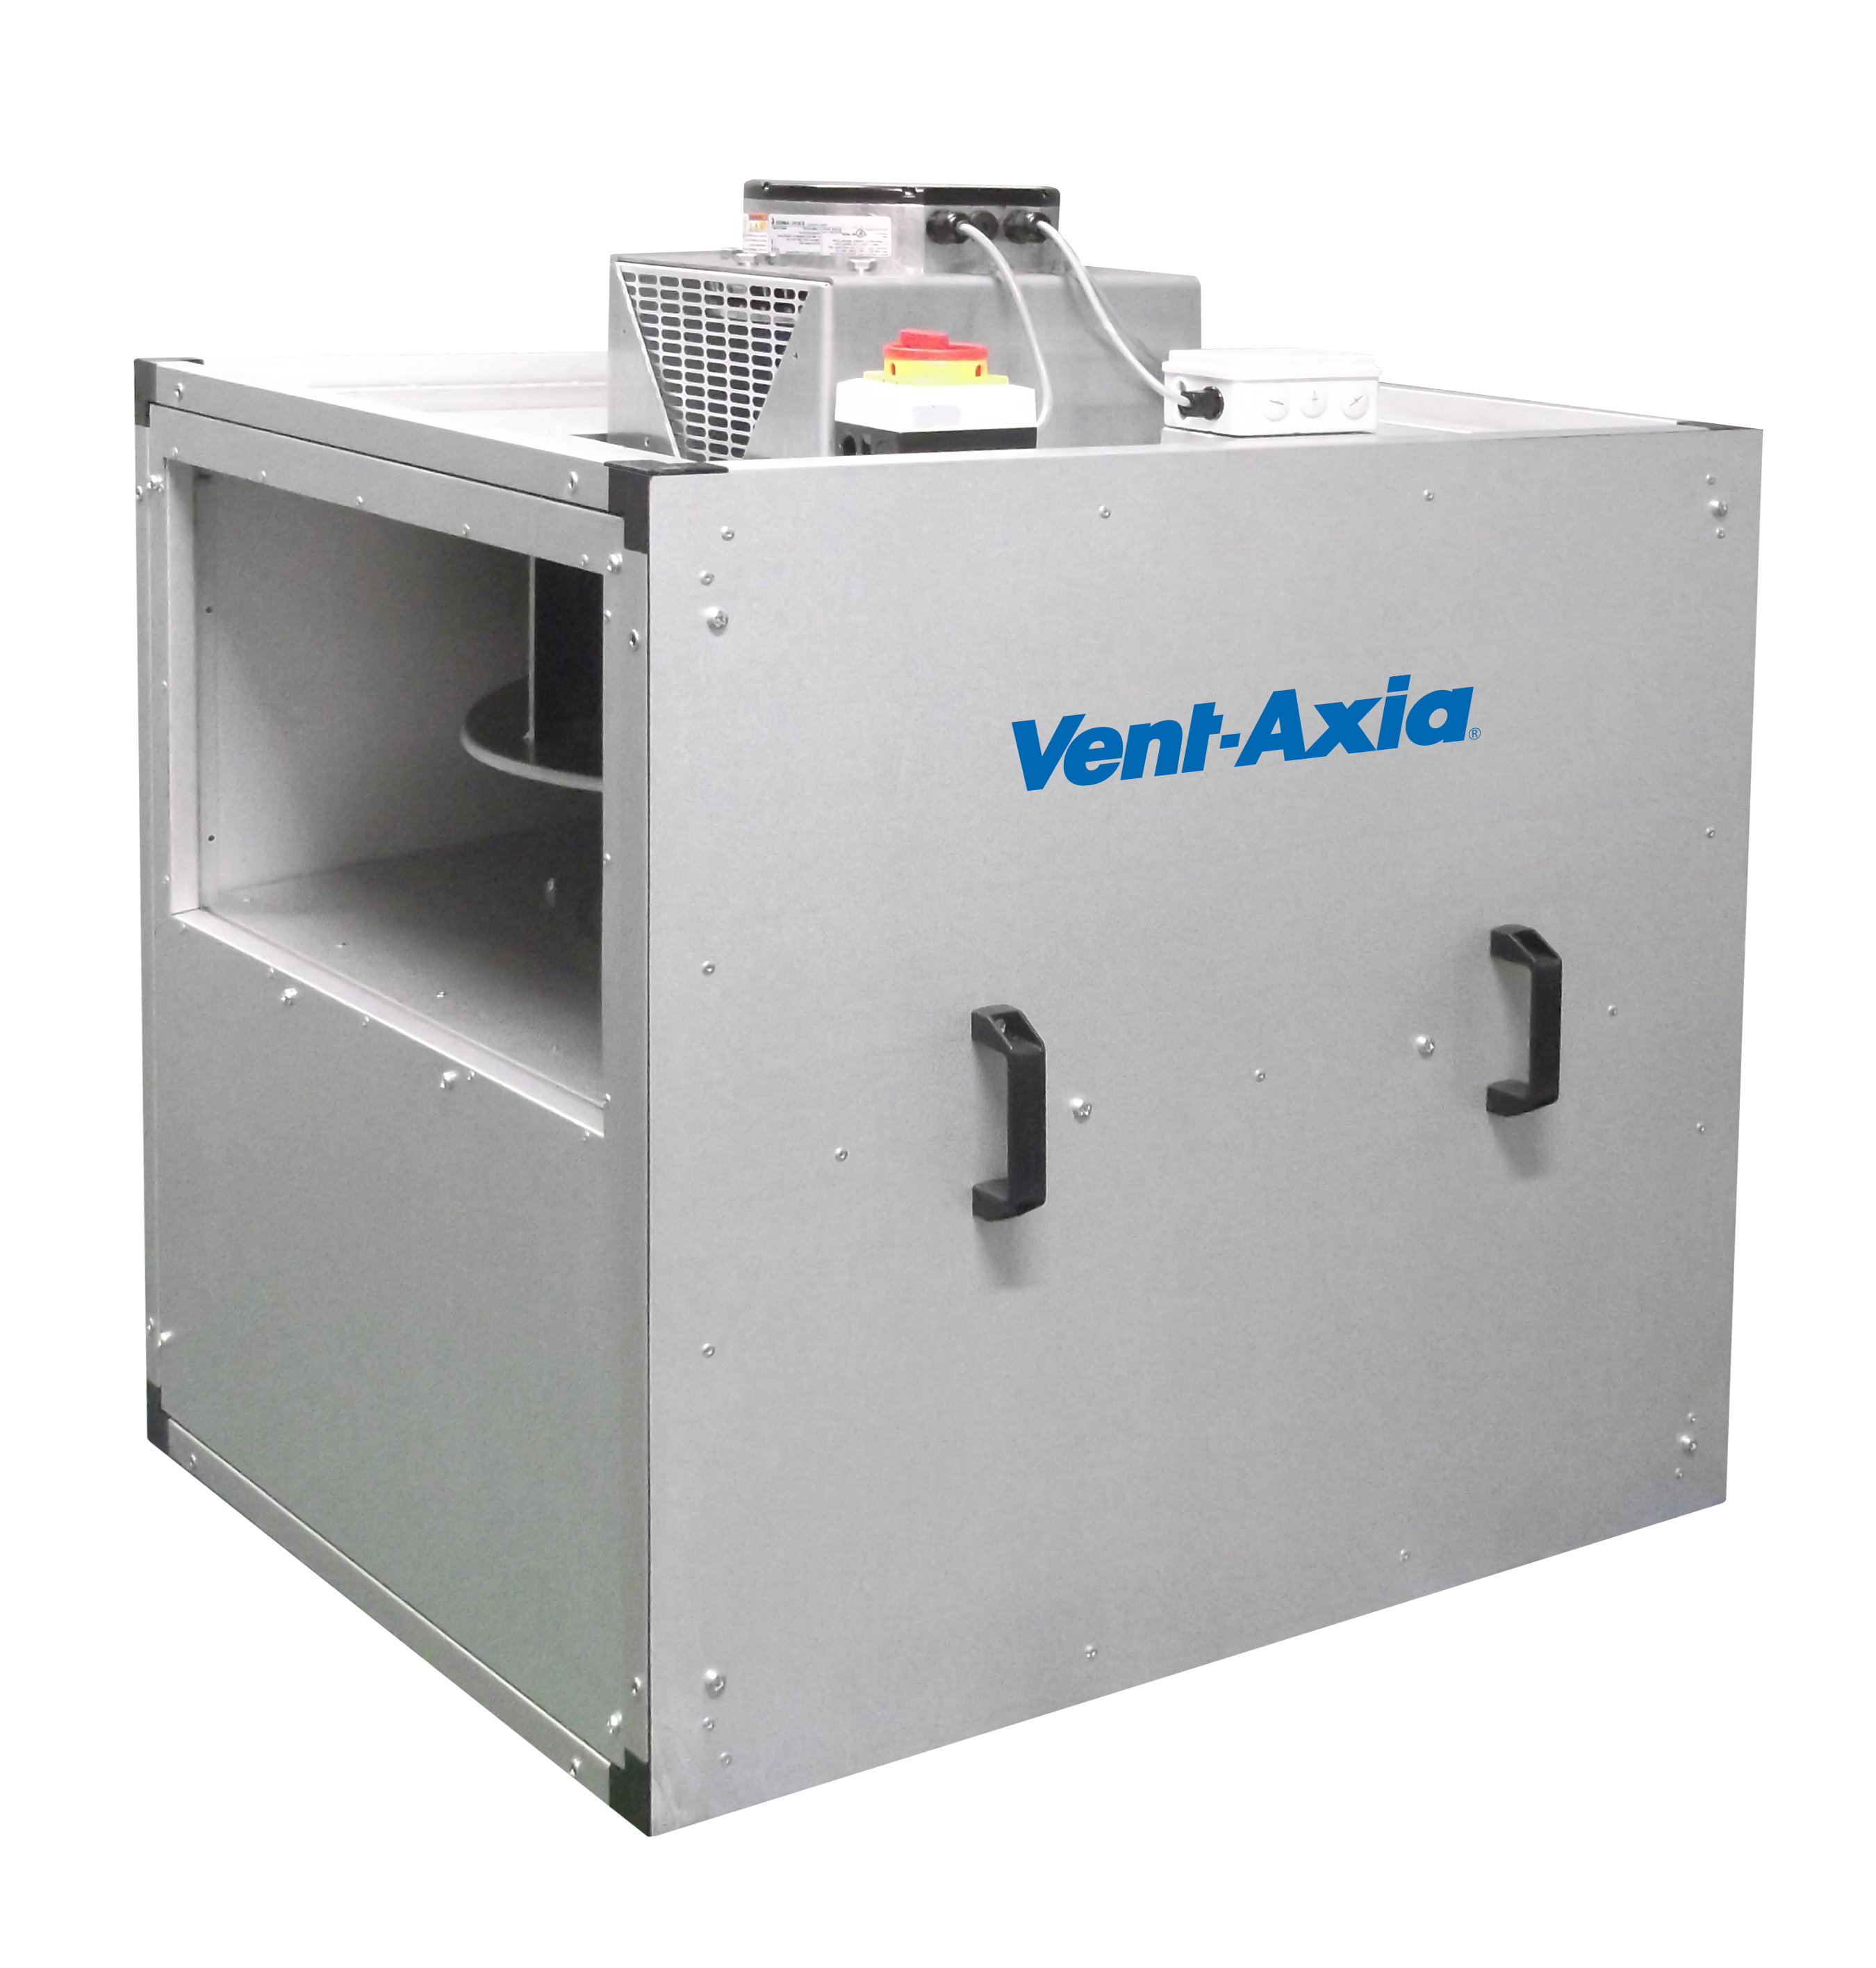 Building regulations bathroom extractor fans - Vent Axia Welcomes Part L Changes To Kitchen Fan Specification